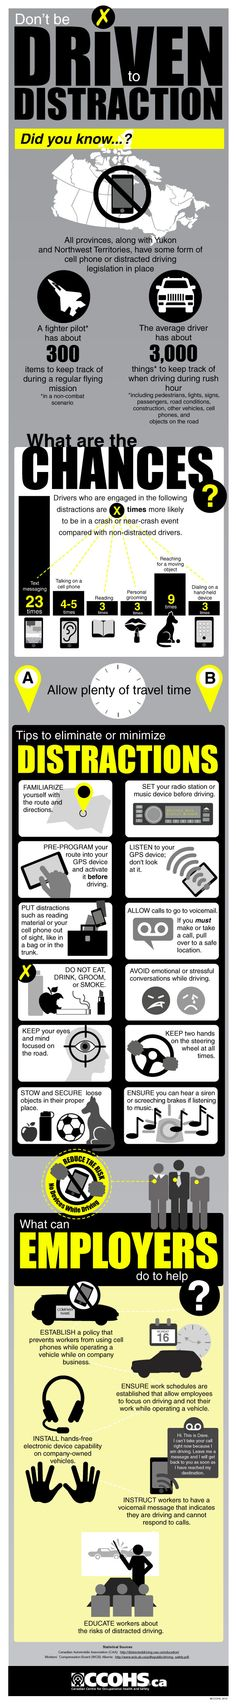 Our infographic highlights why it is important to minimize distractions, and shares helpful tips for both drivers and employers to keep the focus squarely on the road. Read our fact sheet on distracted driving: http://www.ccohs.ca/oshanswers/safety_haz/cellphone_driving.html